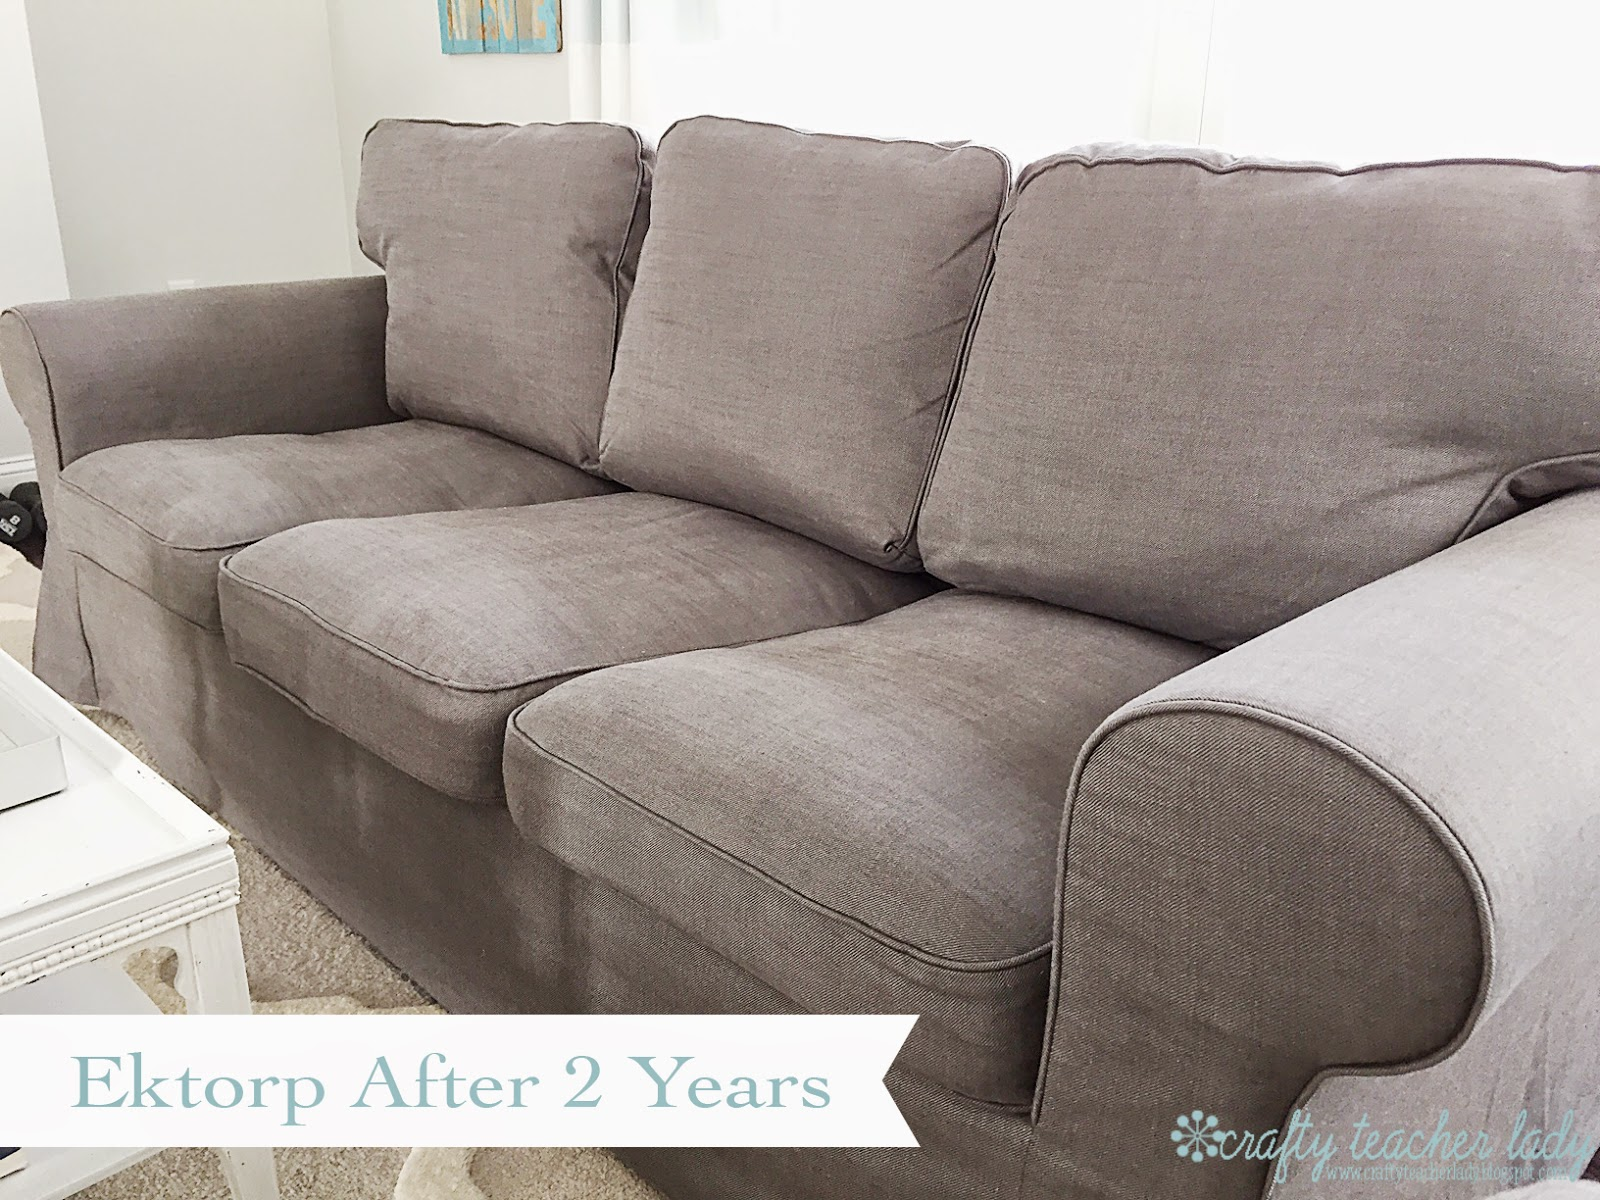 Sofa Cushion Support Reviews Chair And Slipcovers Crafty Teacher Lady Review Of The Ikea Ektorp Series